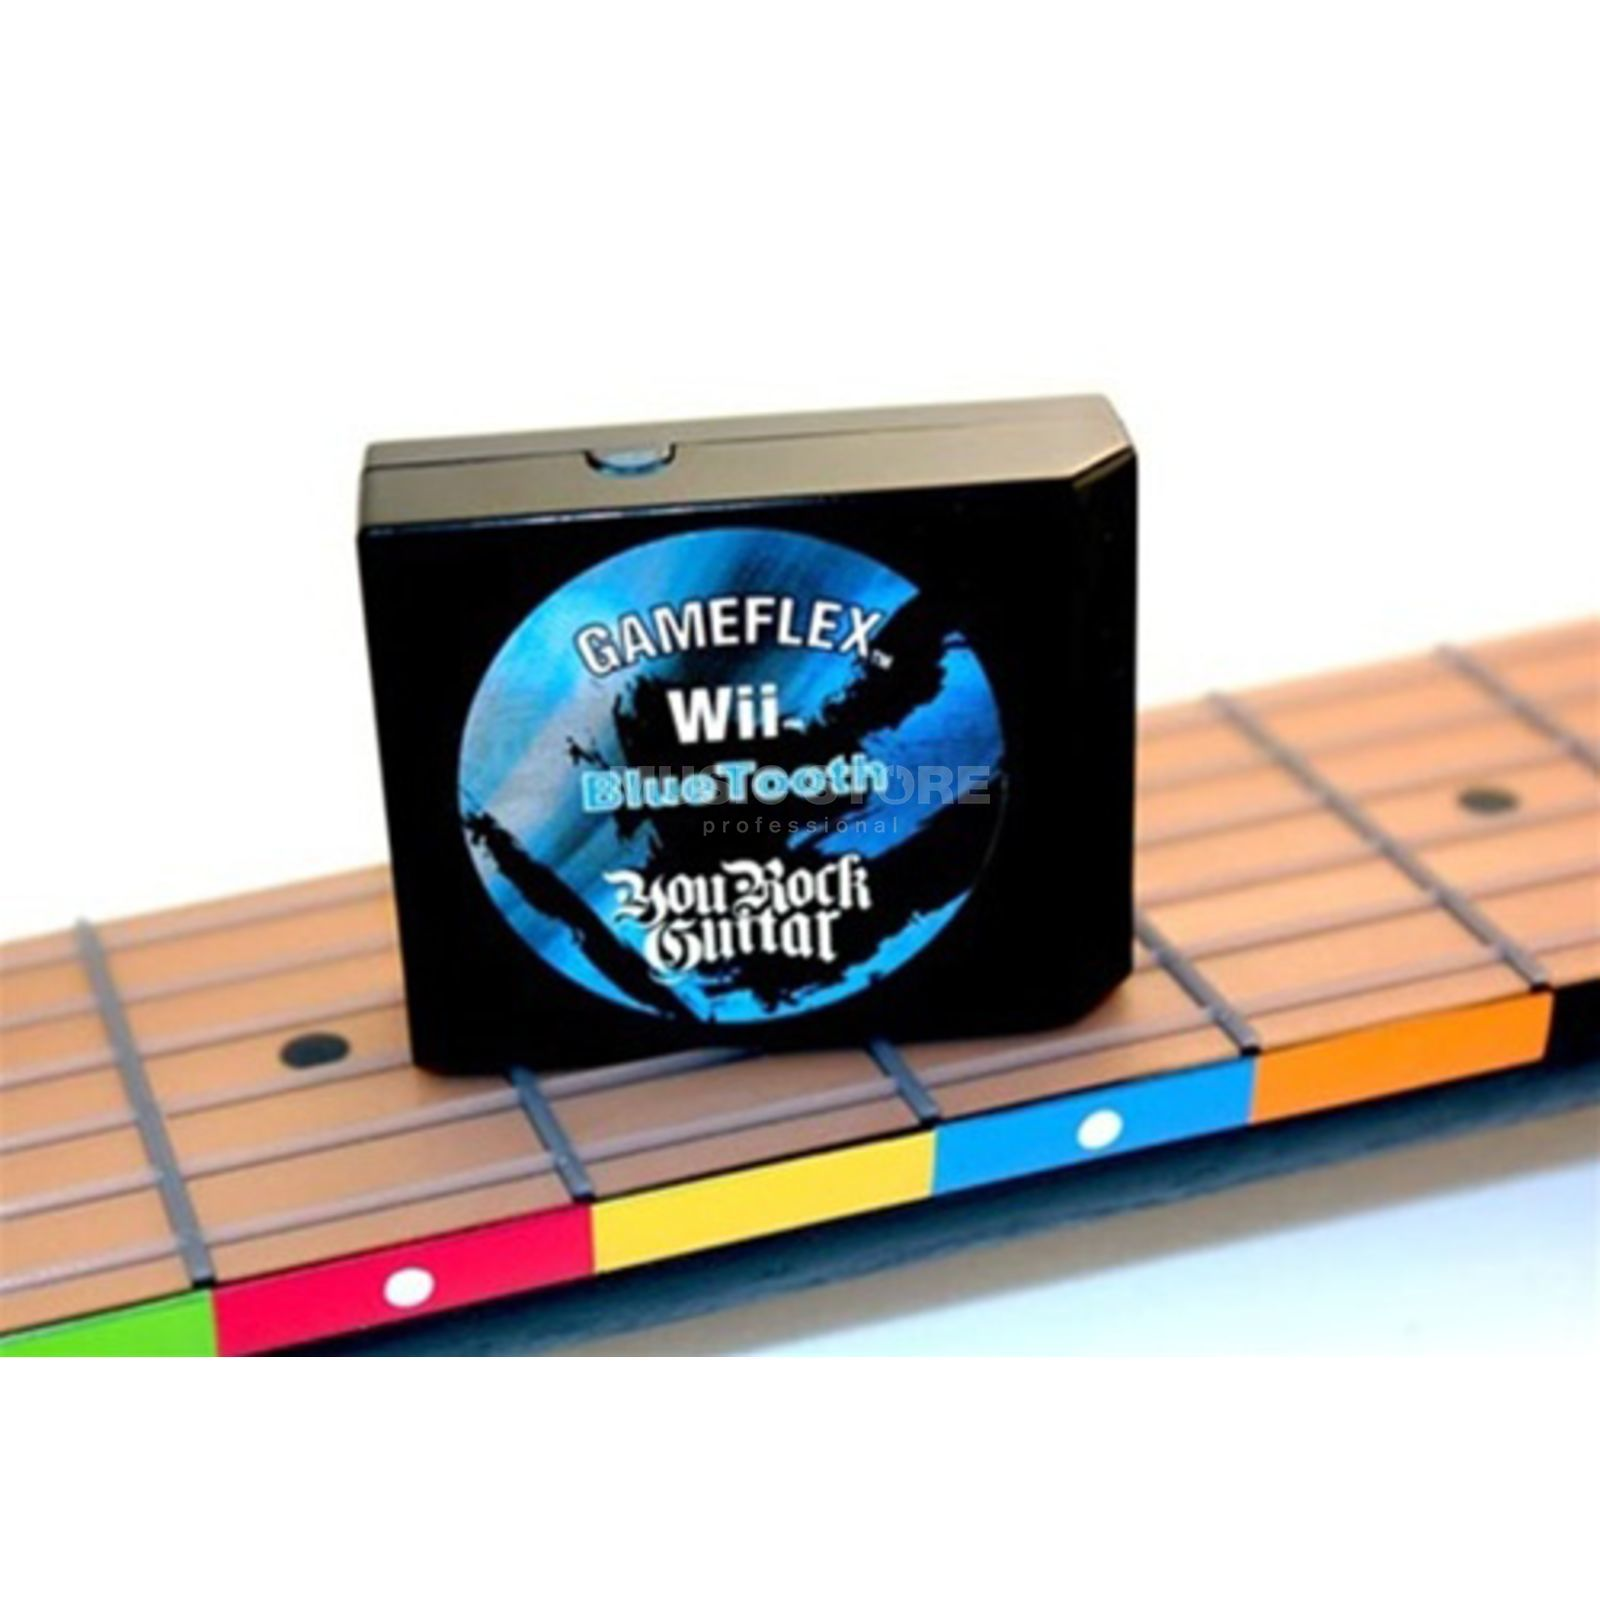 You Rock Guitar Gameflex Cartridge for Wii You Rock Guitar / YRG103 Produktbild